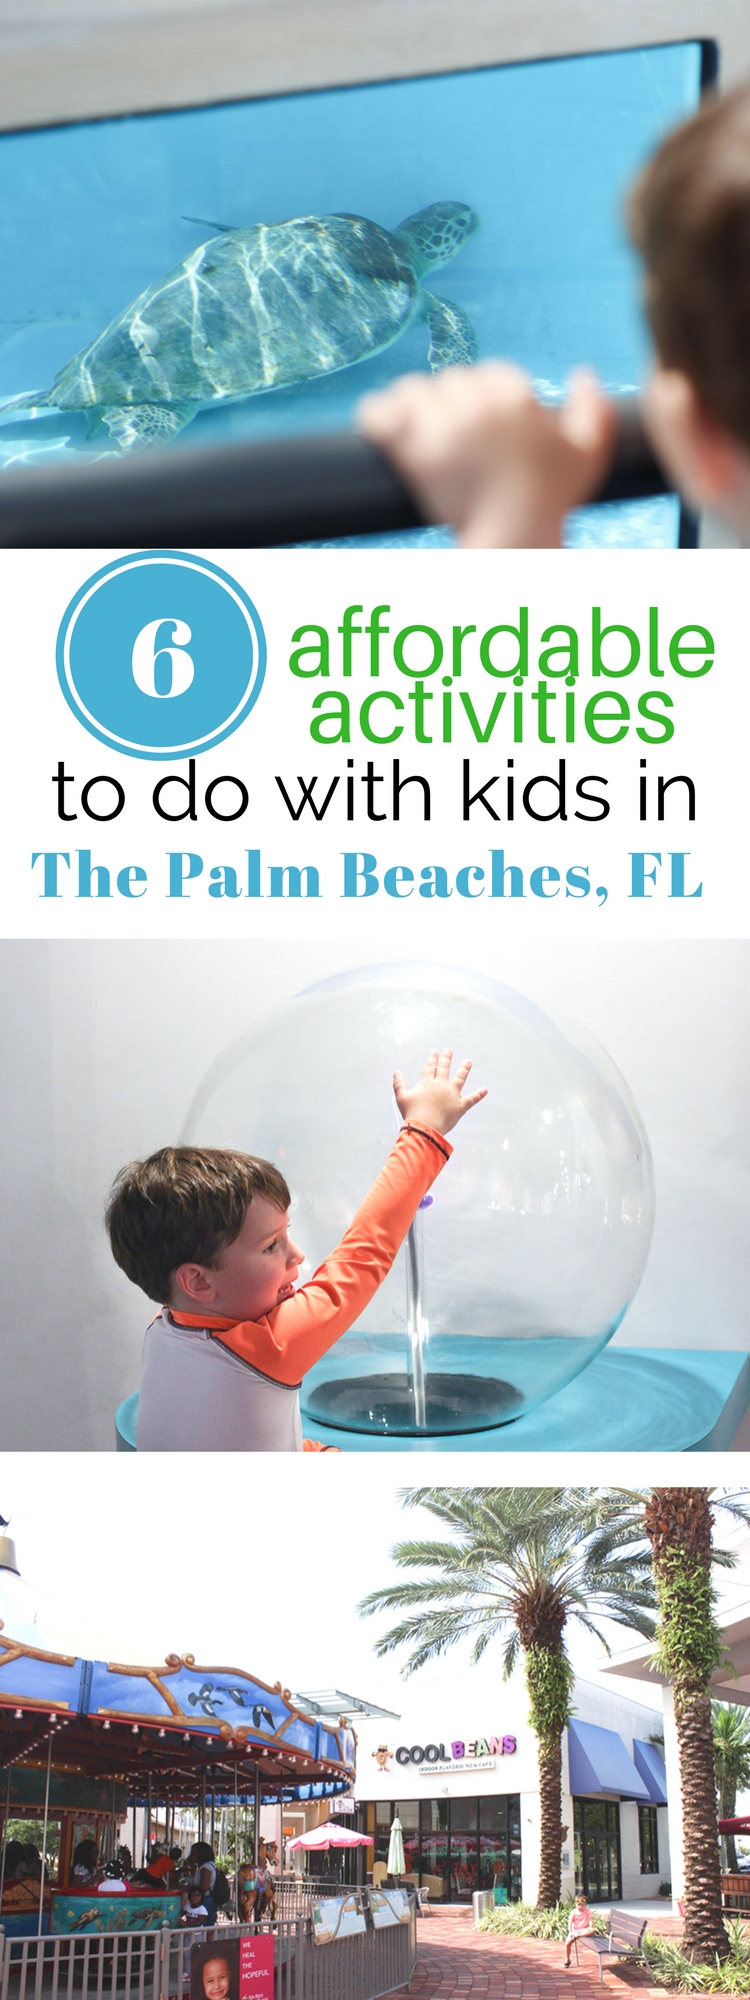 Read all about 6 affordable activities to do with kids in The Palm Beaches FL